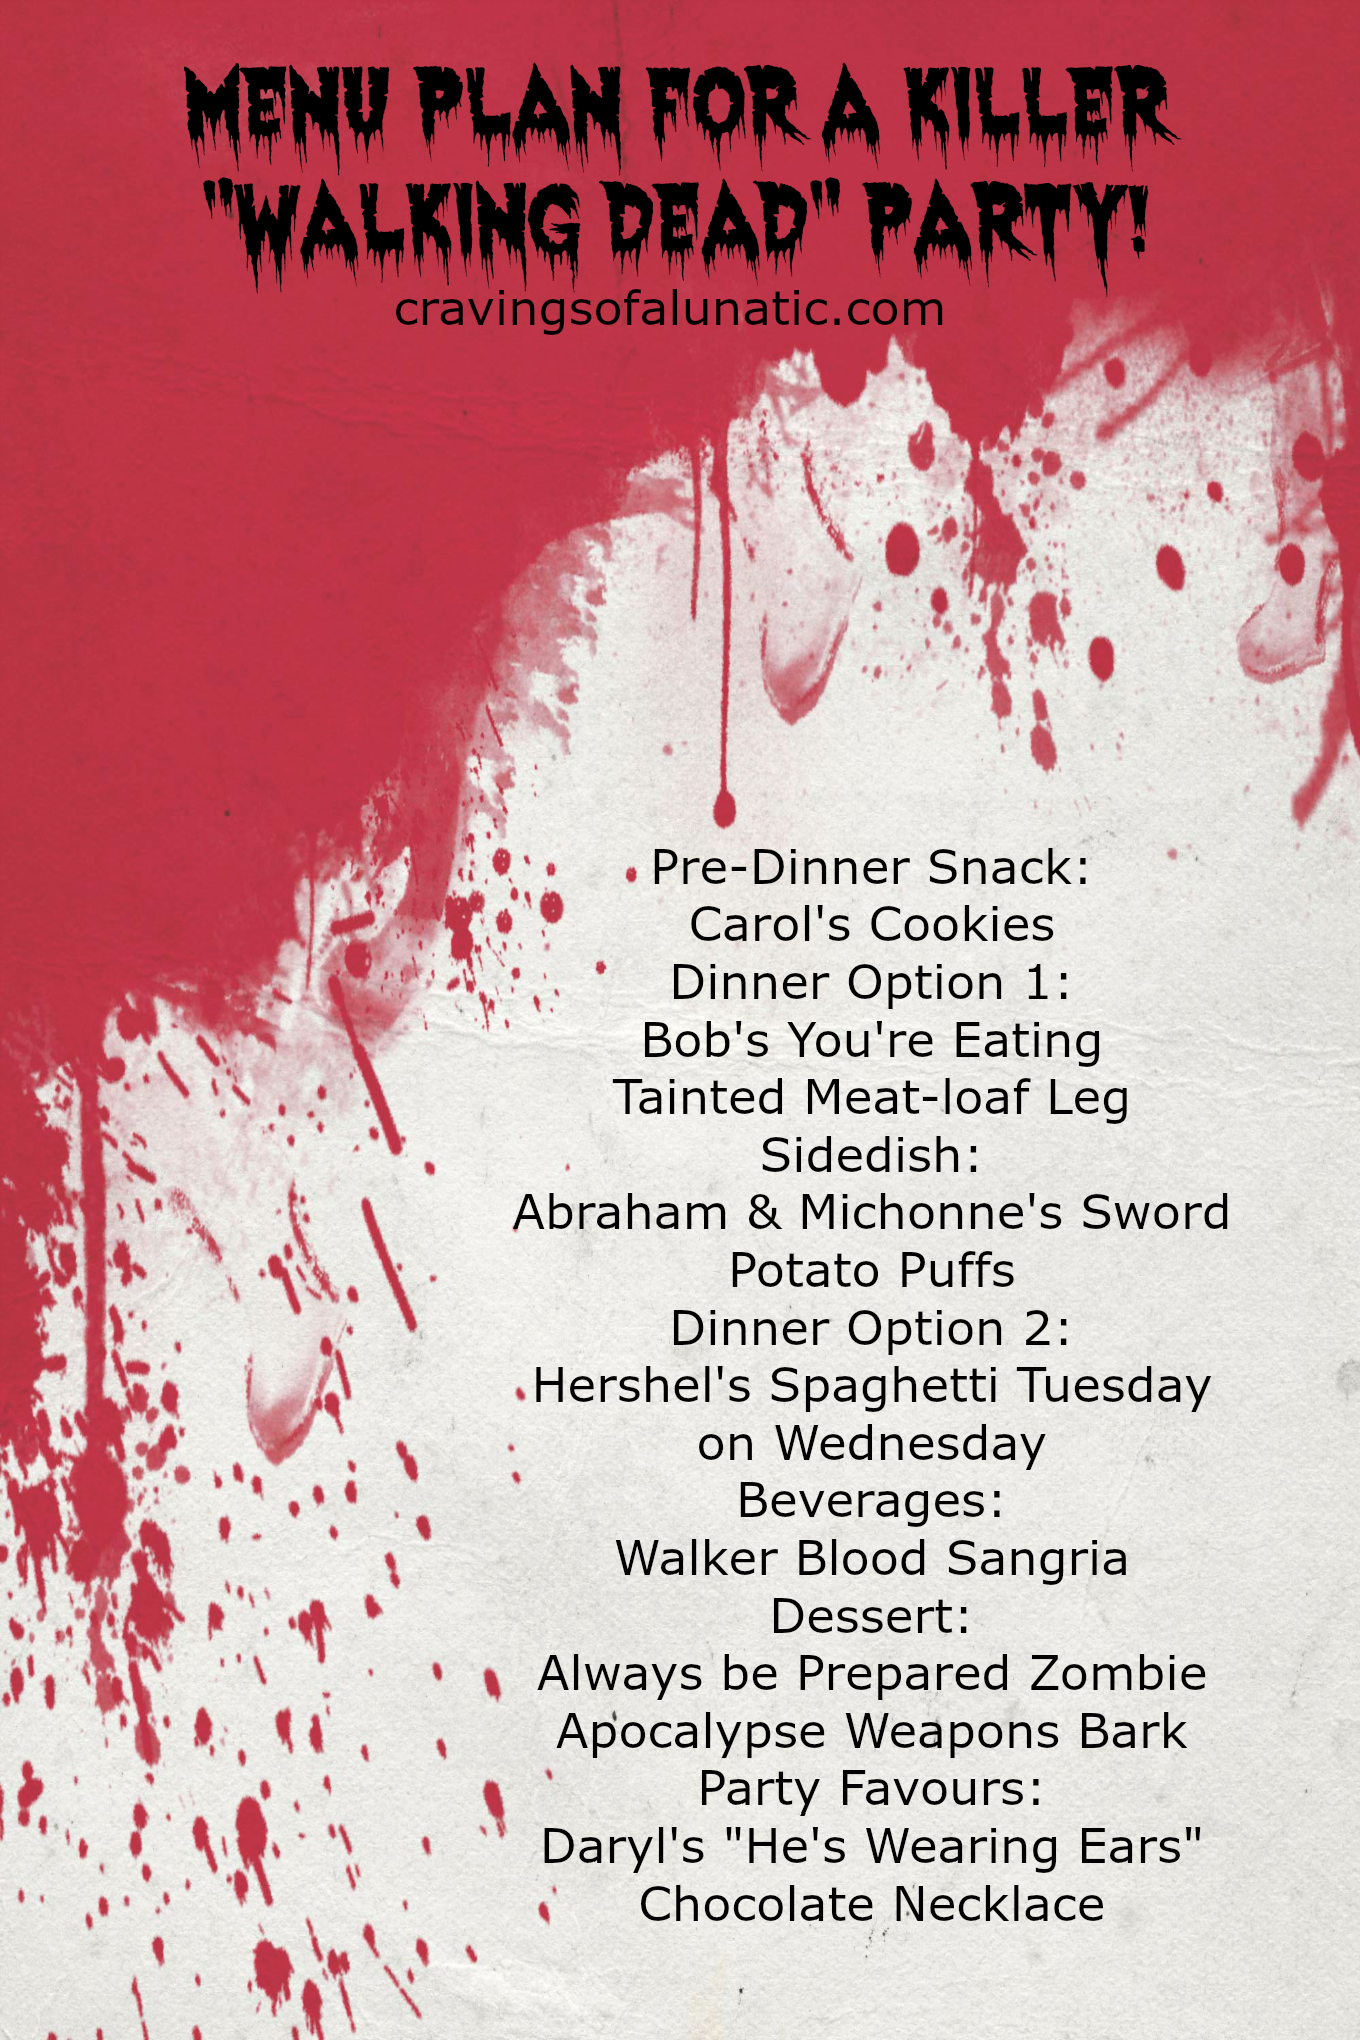 Menu Plan for a Killer Walking Dead Party courtesy of cravingsofalunatic.com